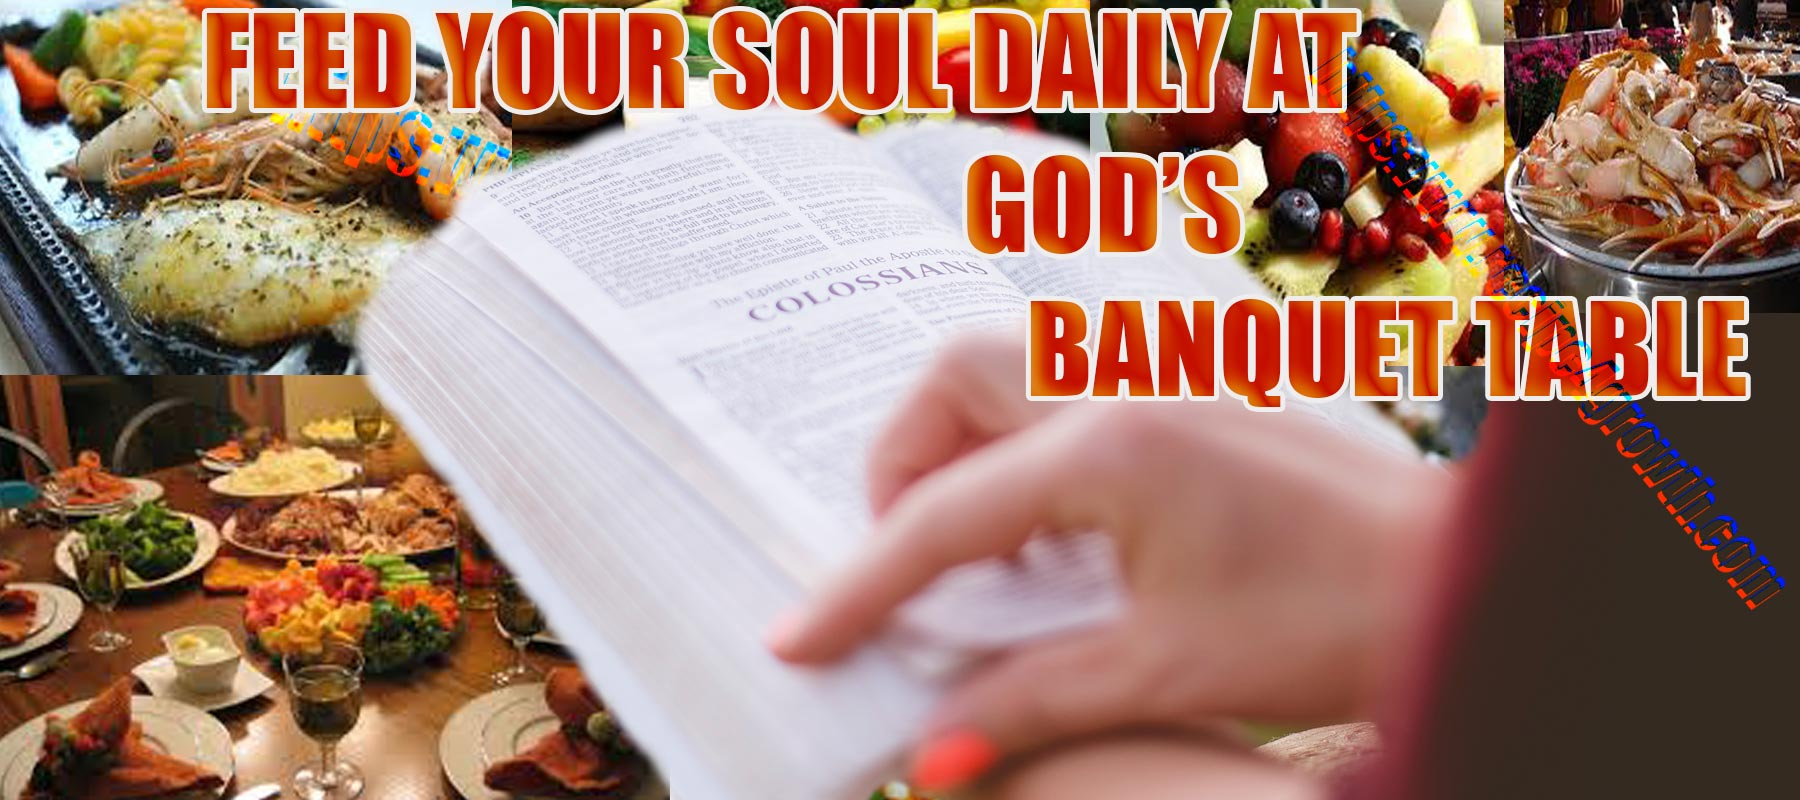 Daily Soul Feast at God's Banqueting table